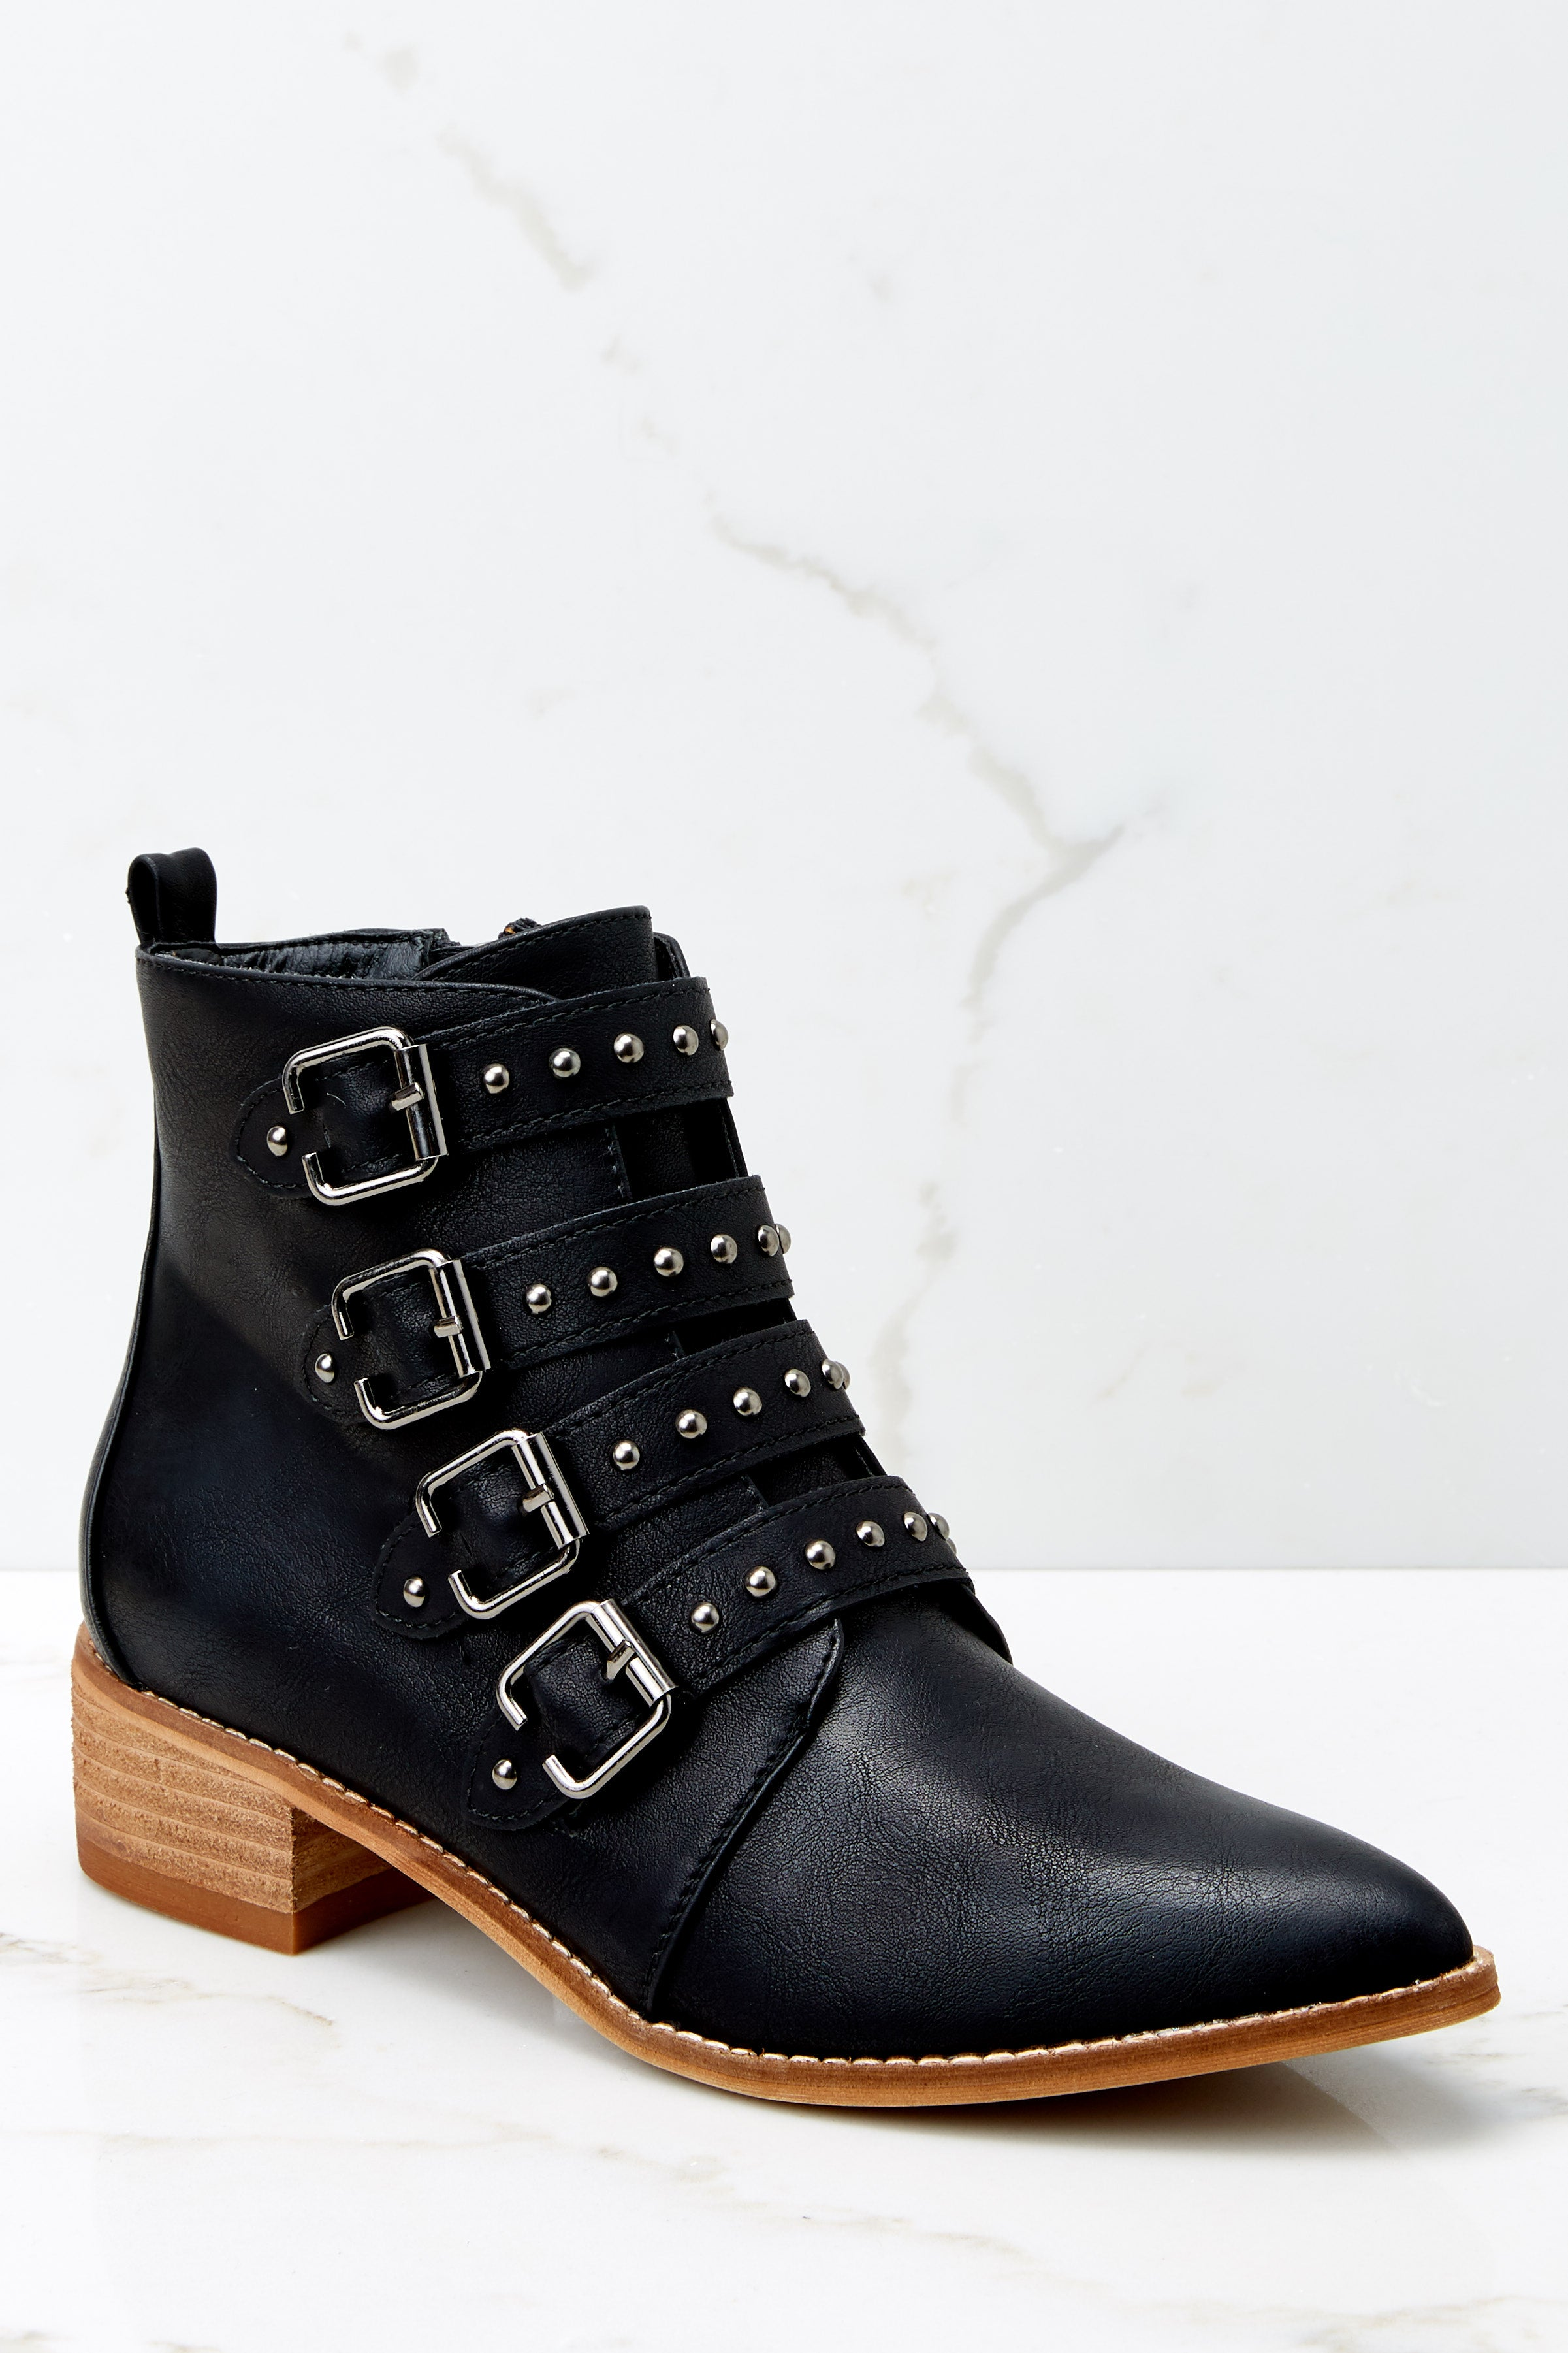 2 City Girl Black Ankle Boots (BACKORDER OCTOBER) @ reddress.com